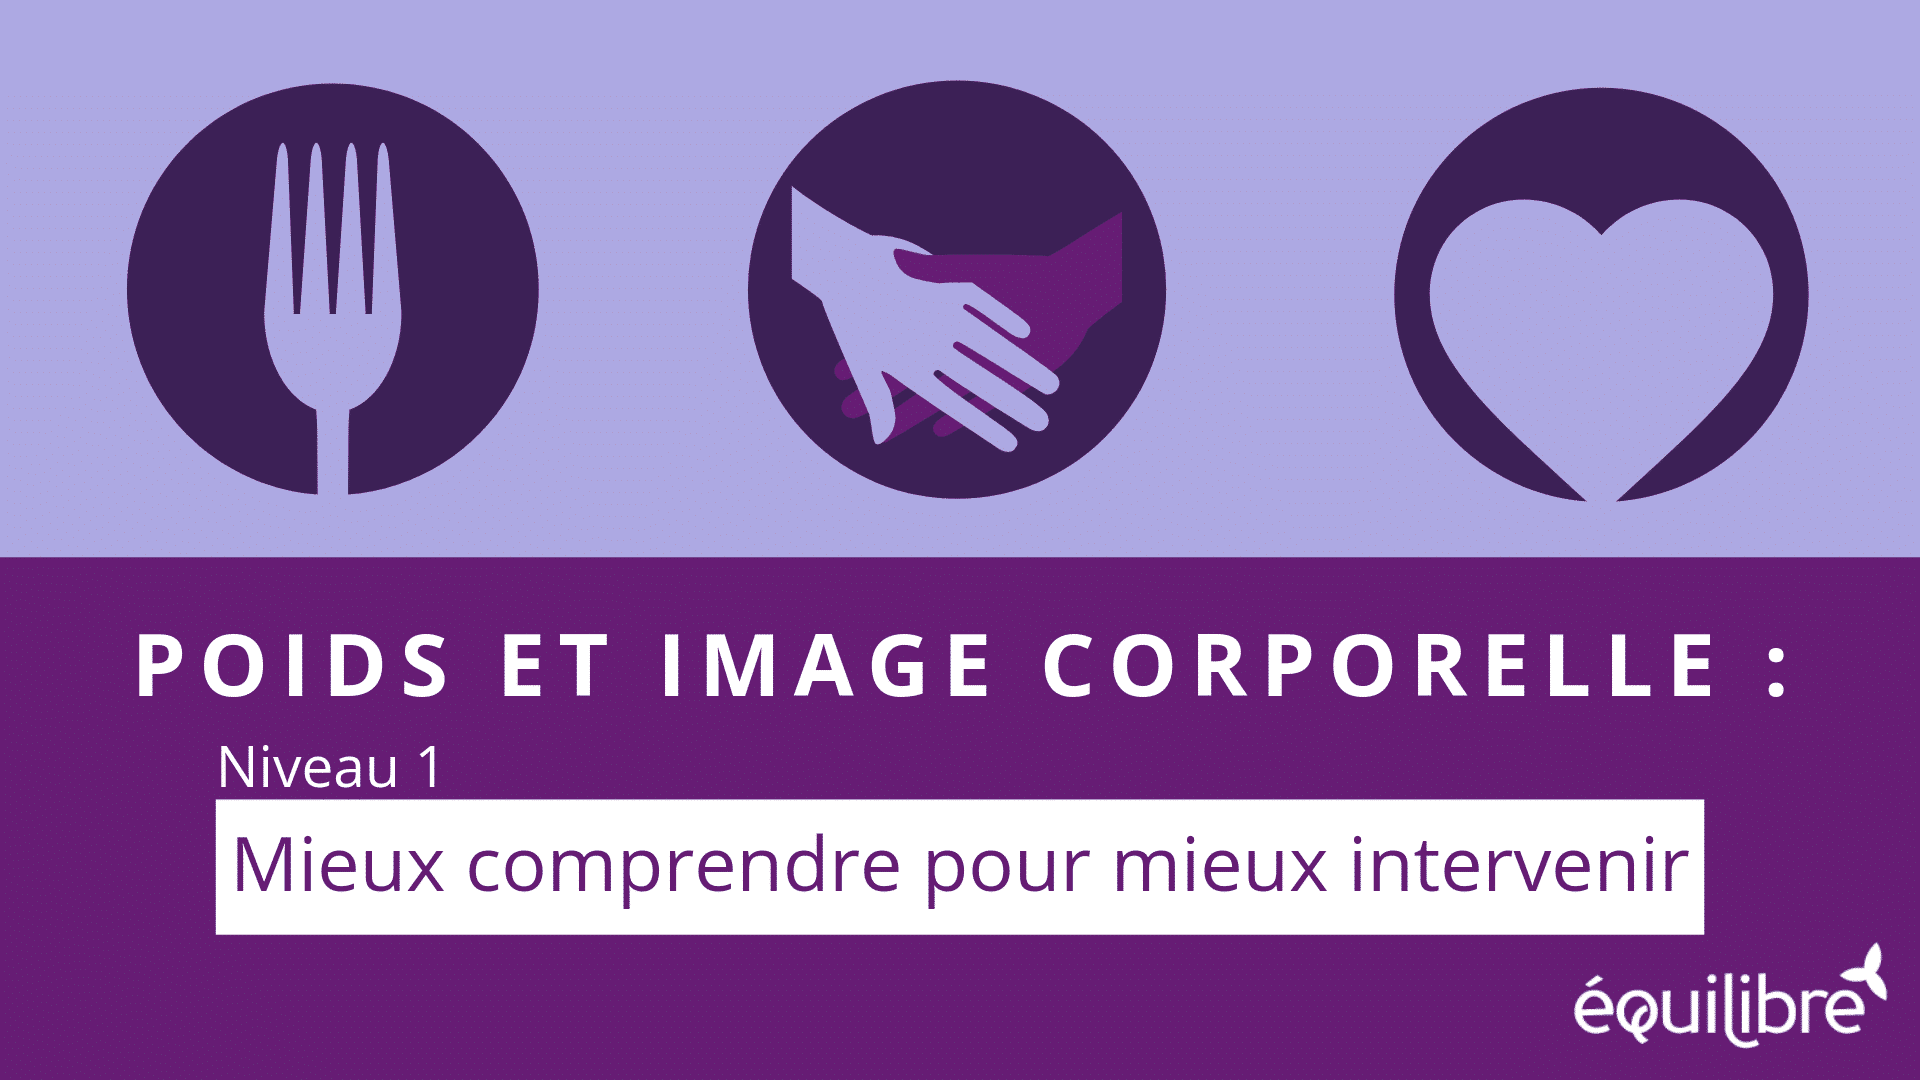 https://equilibre.ca/wp-content/uploads/2019/09/INPP_Page_Produit.png